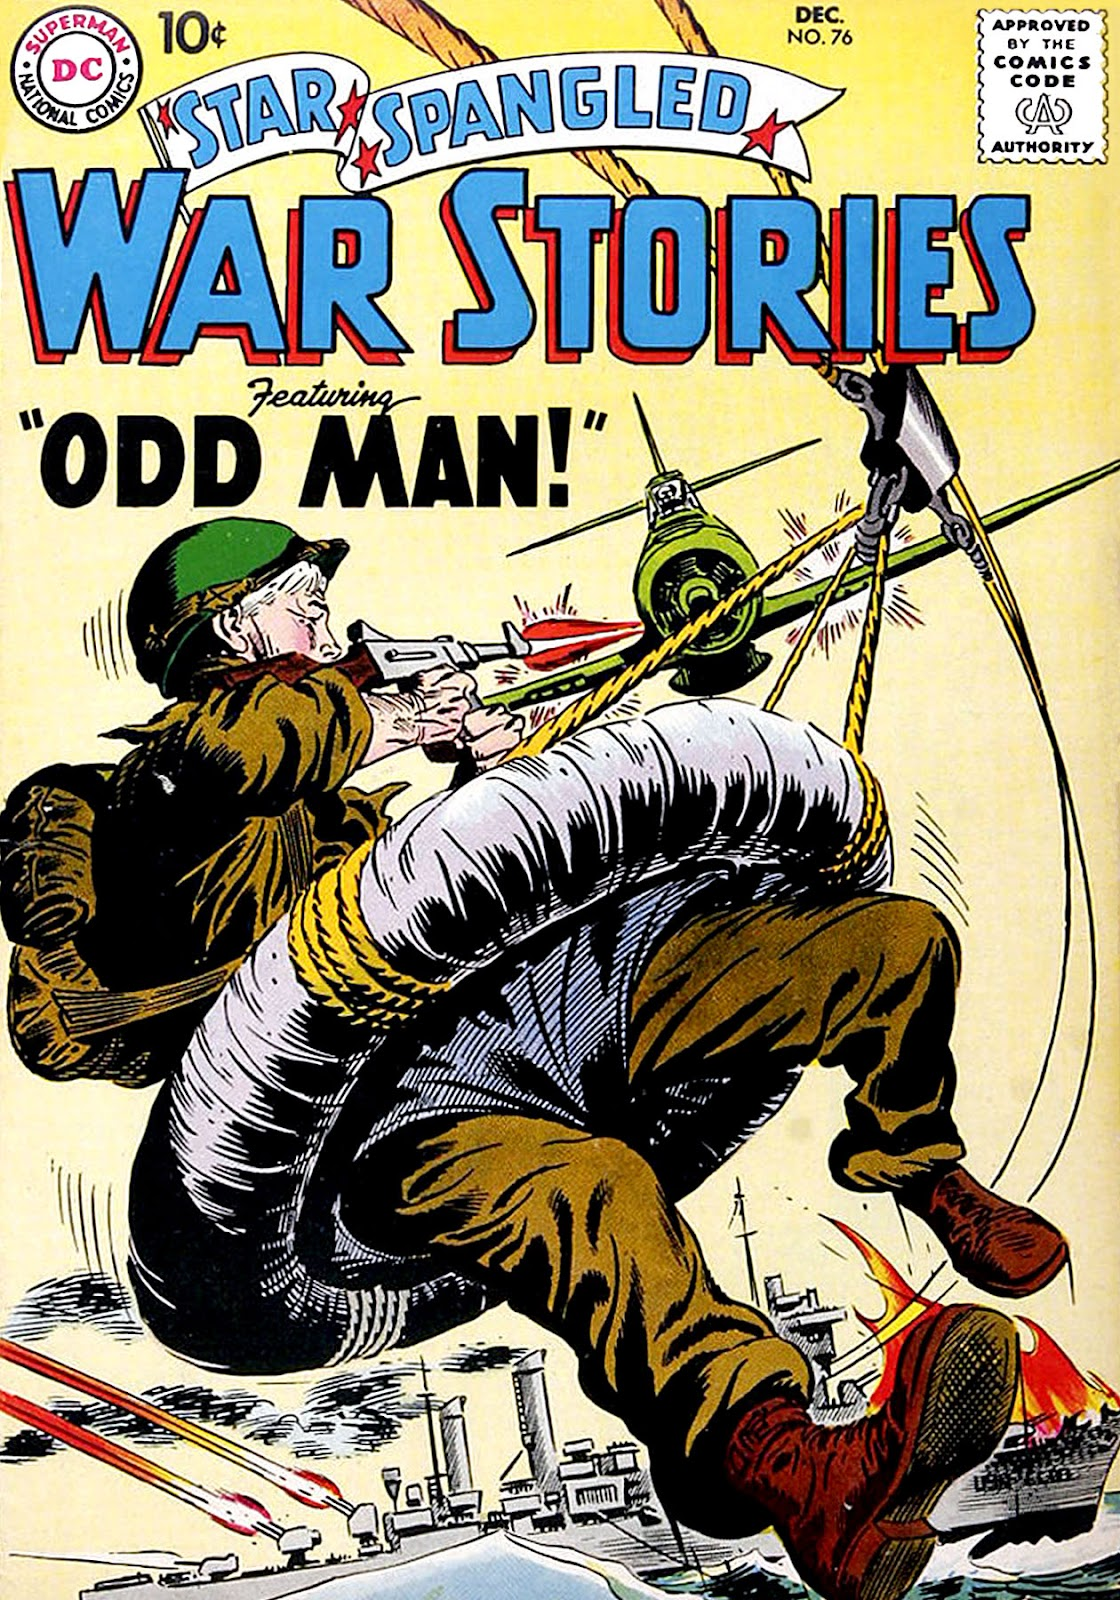 Star Spangled War Stories (1952) issue 76 - Page 1